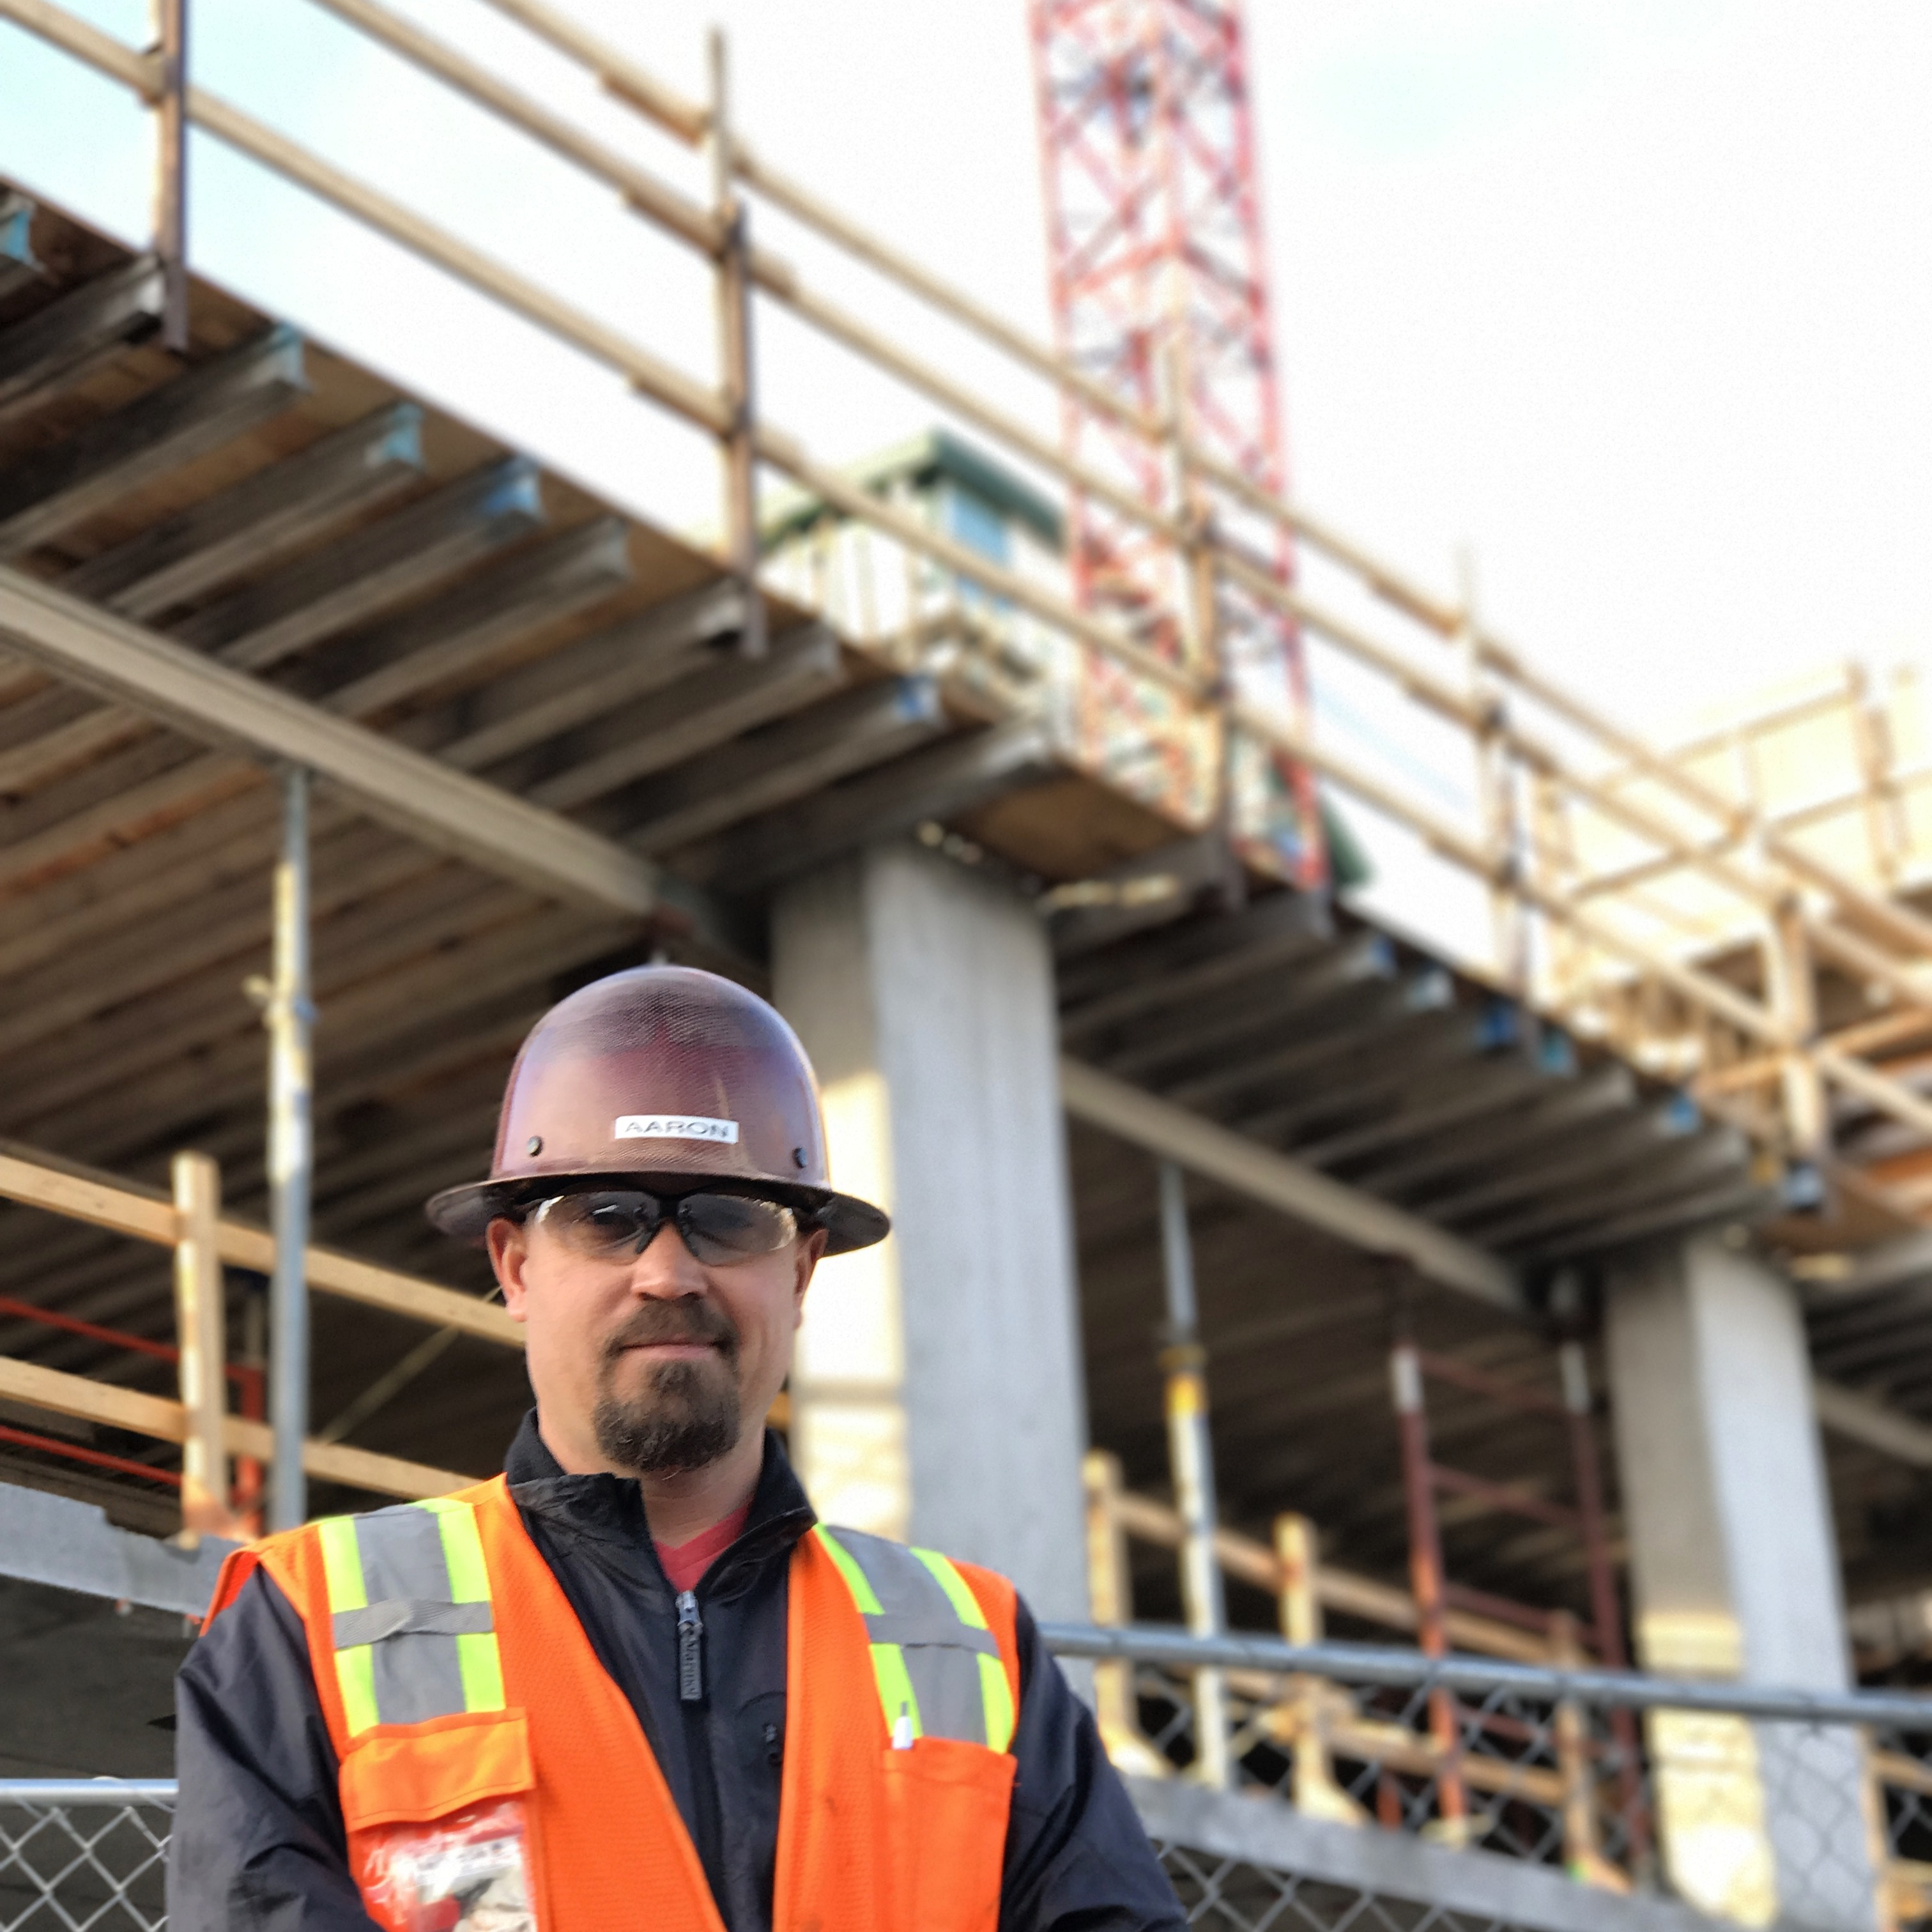 <p>Aaron Genova operates a crane for RMS Cranes, which is based in Denver.</p>